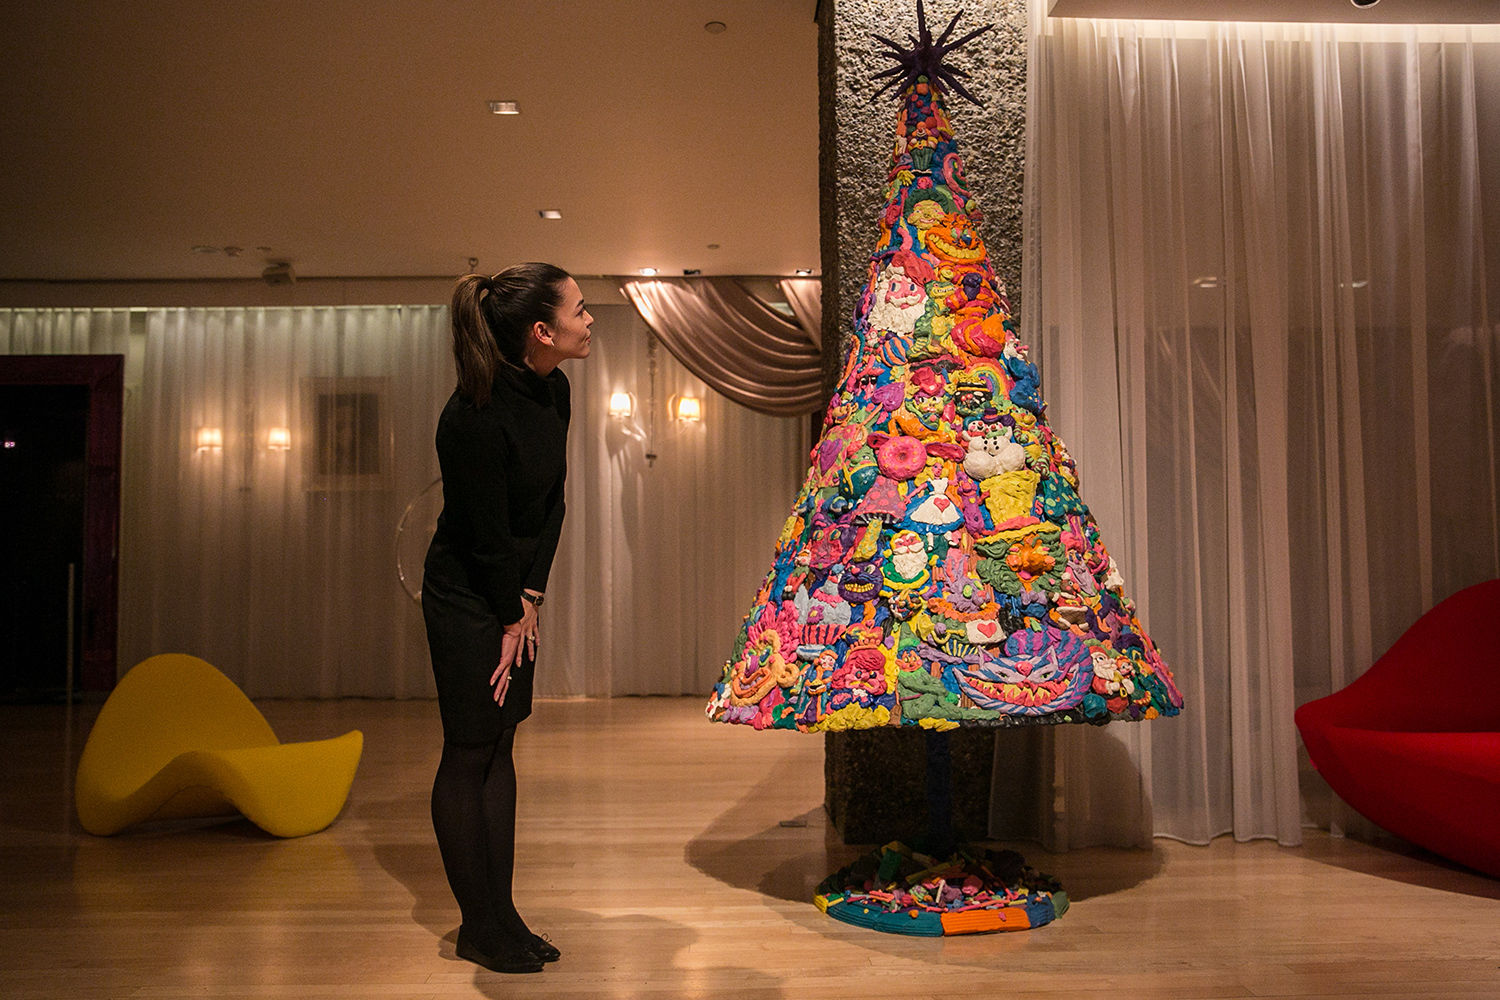 This Truly Bizarre Christmas Tree Is Entirely Made Out Of